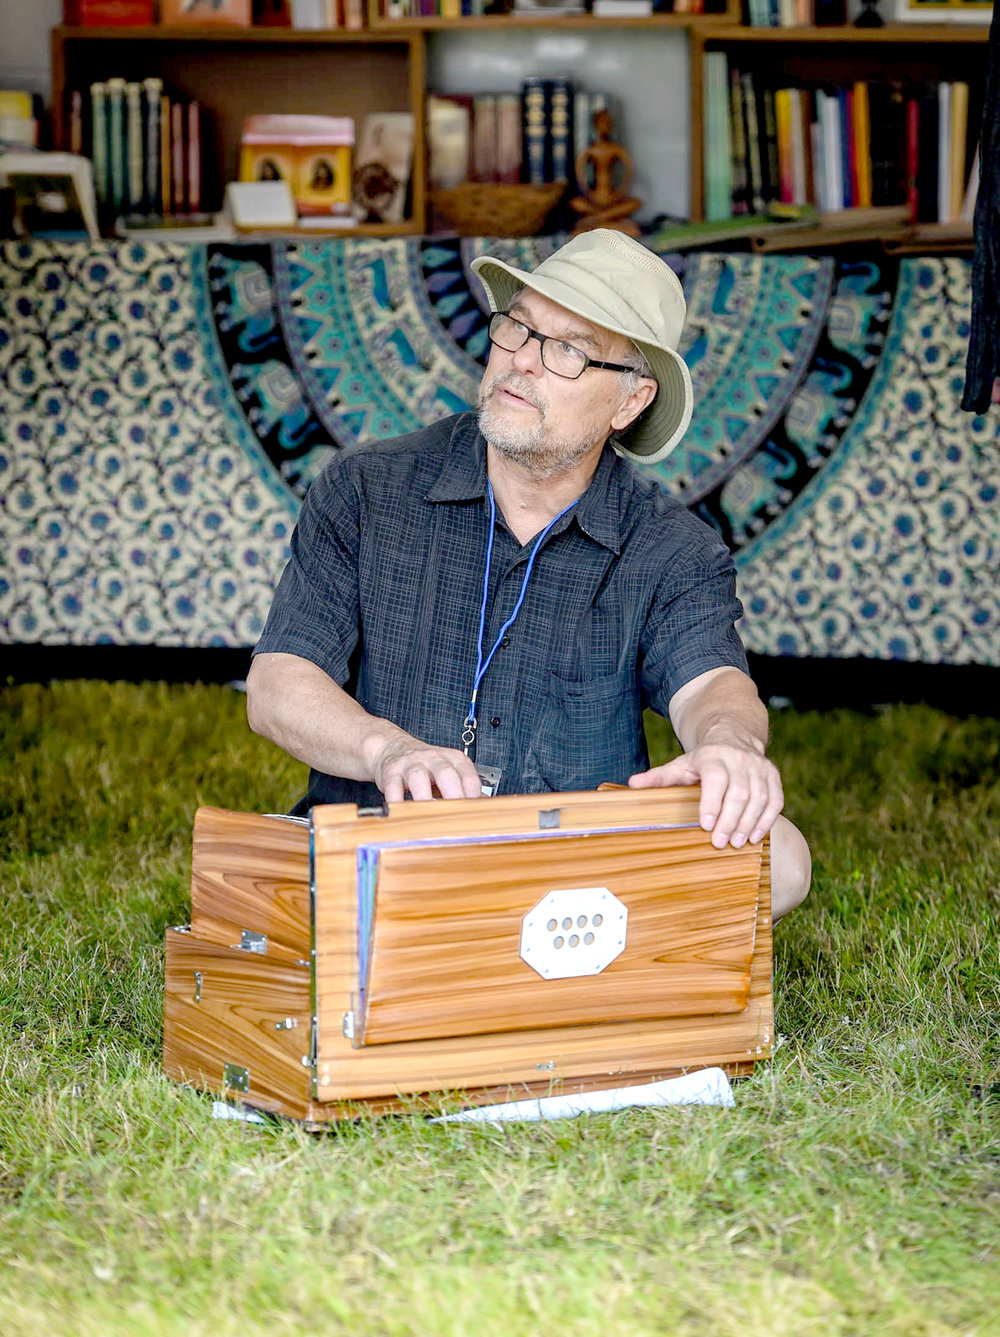 Whispers Of Om Kirtan : Karen Epperson & Steve Sandner - Description: Come listen to some beautiful, peaceful Kirtan provided by our very own Song of the Morning residents and musicians!